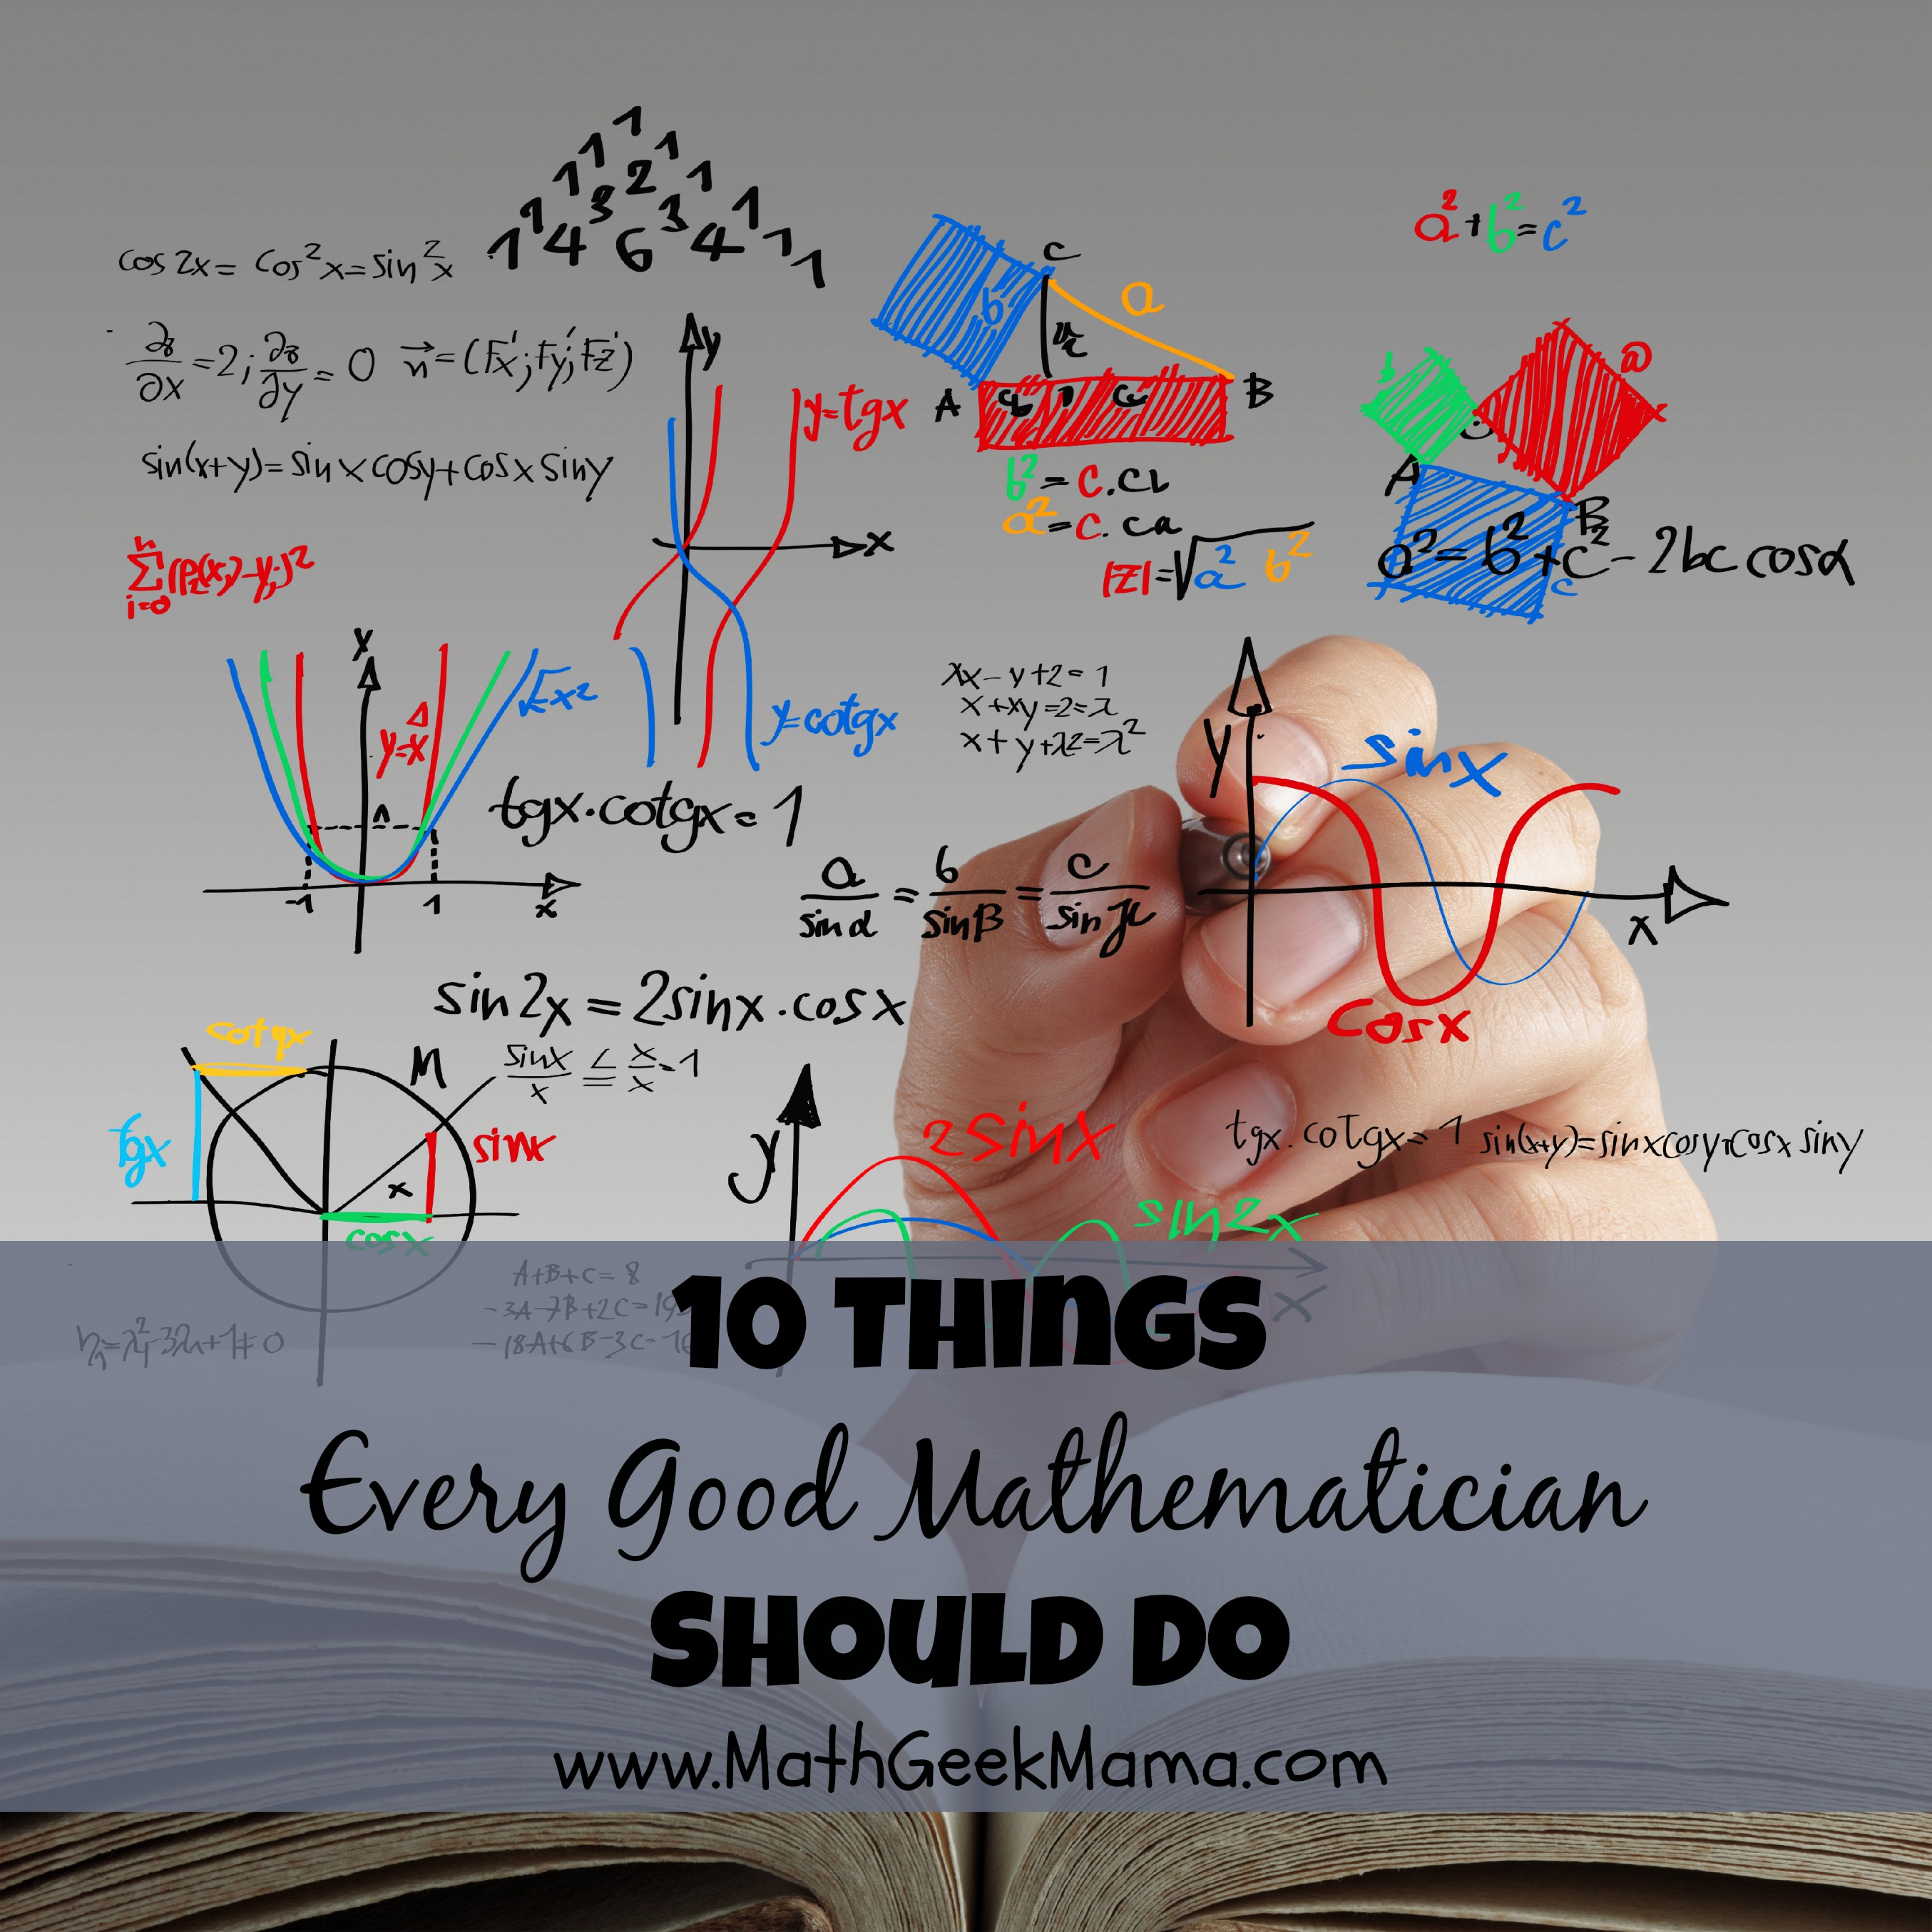 10 Things Every Good Mathematician Should Do